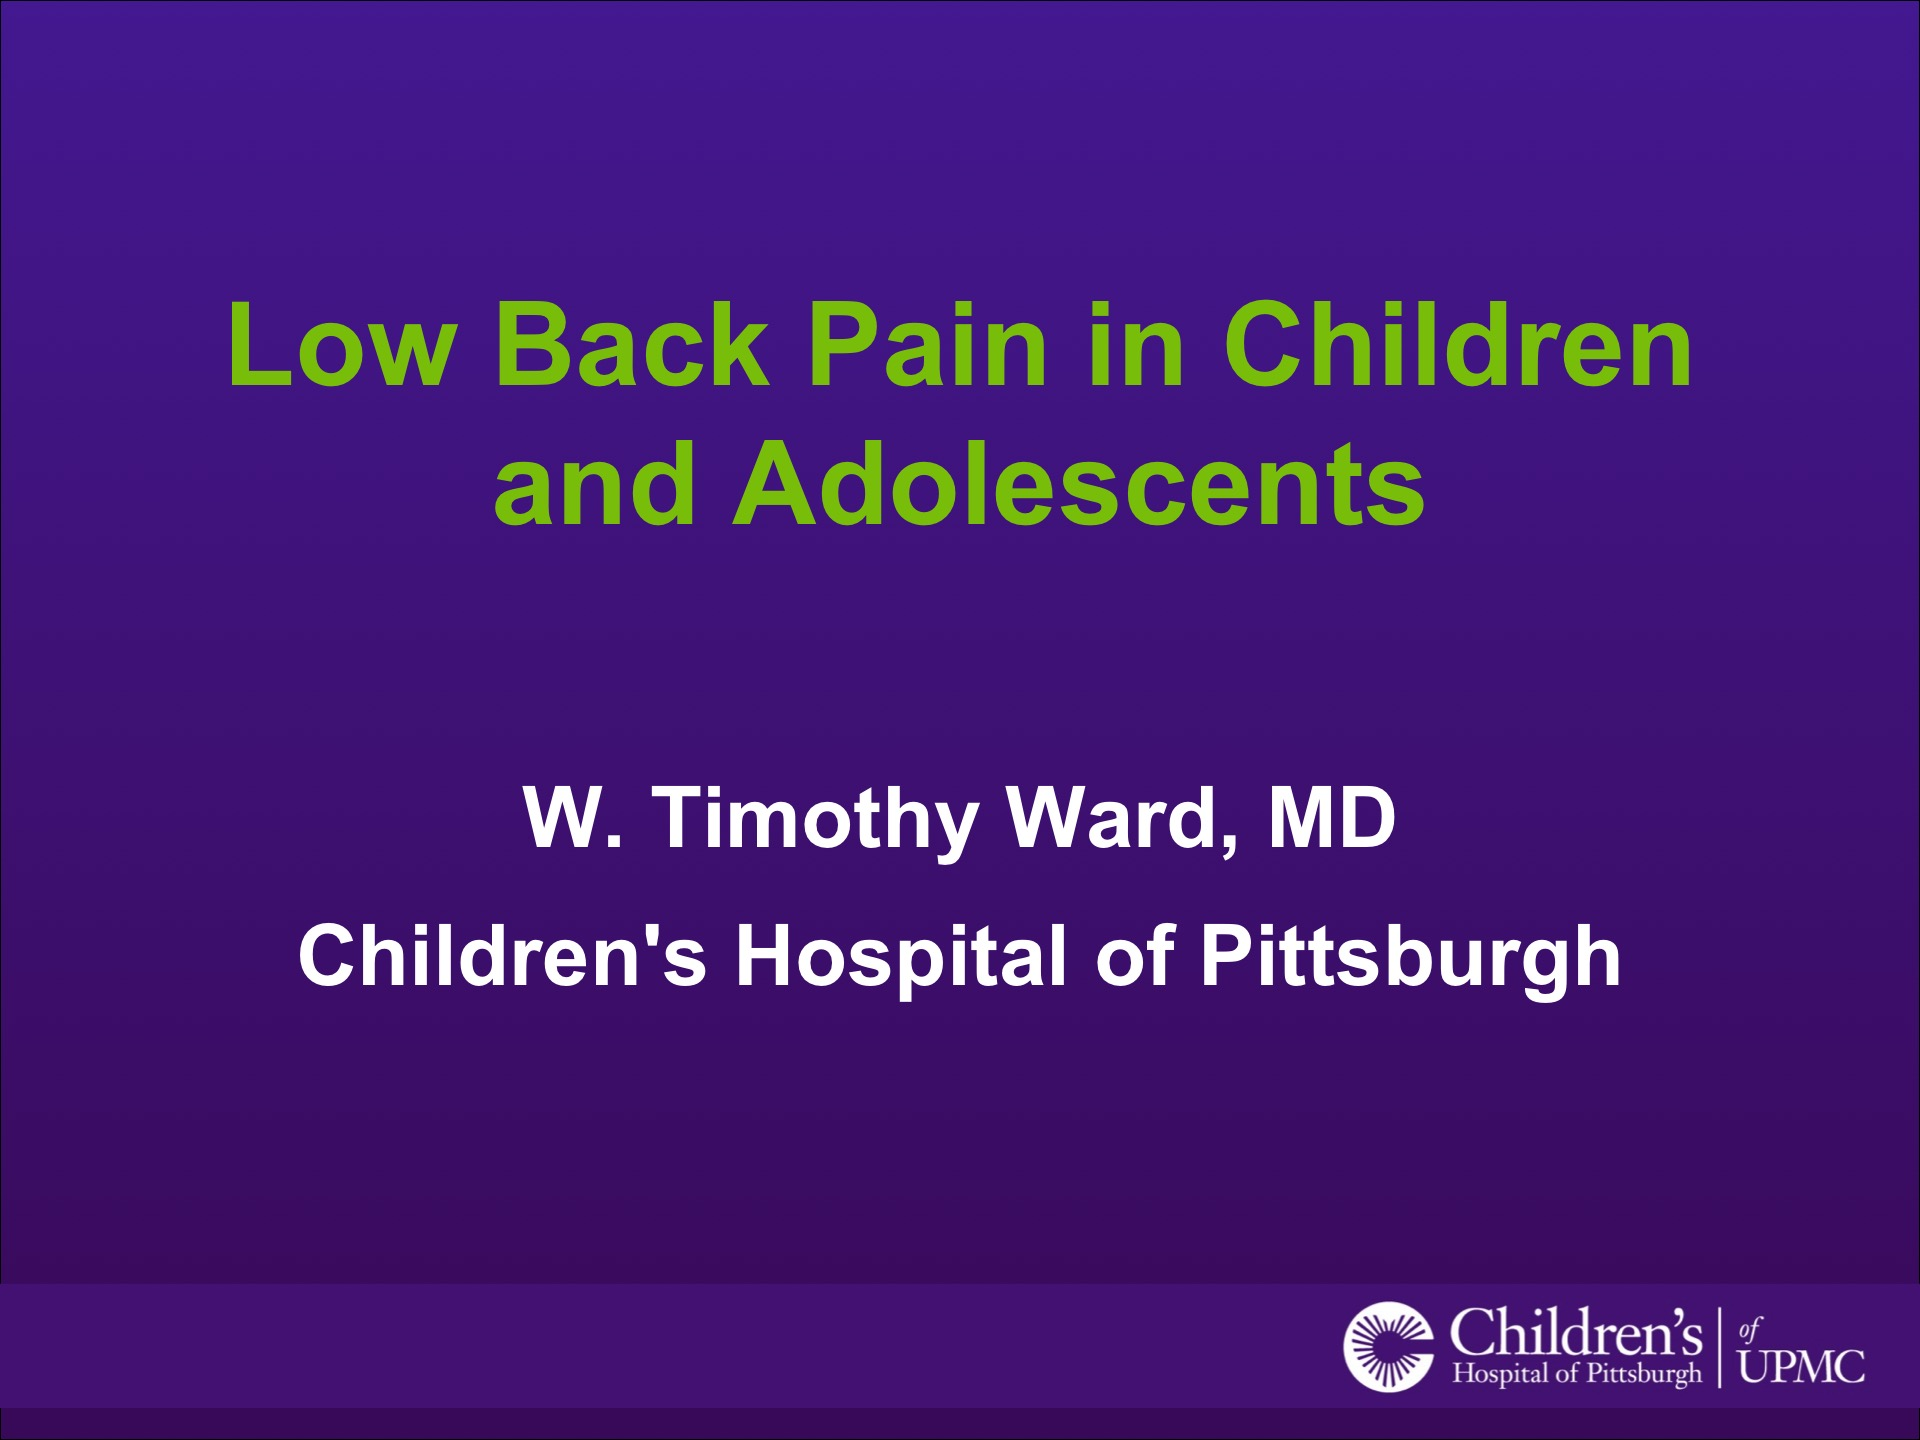 Low Back Pain in Children and Adolescents | UPMC